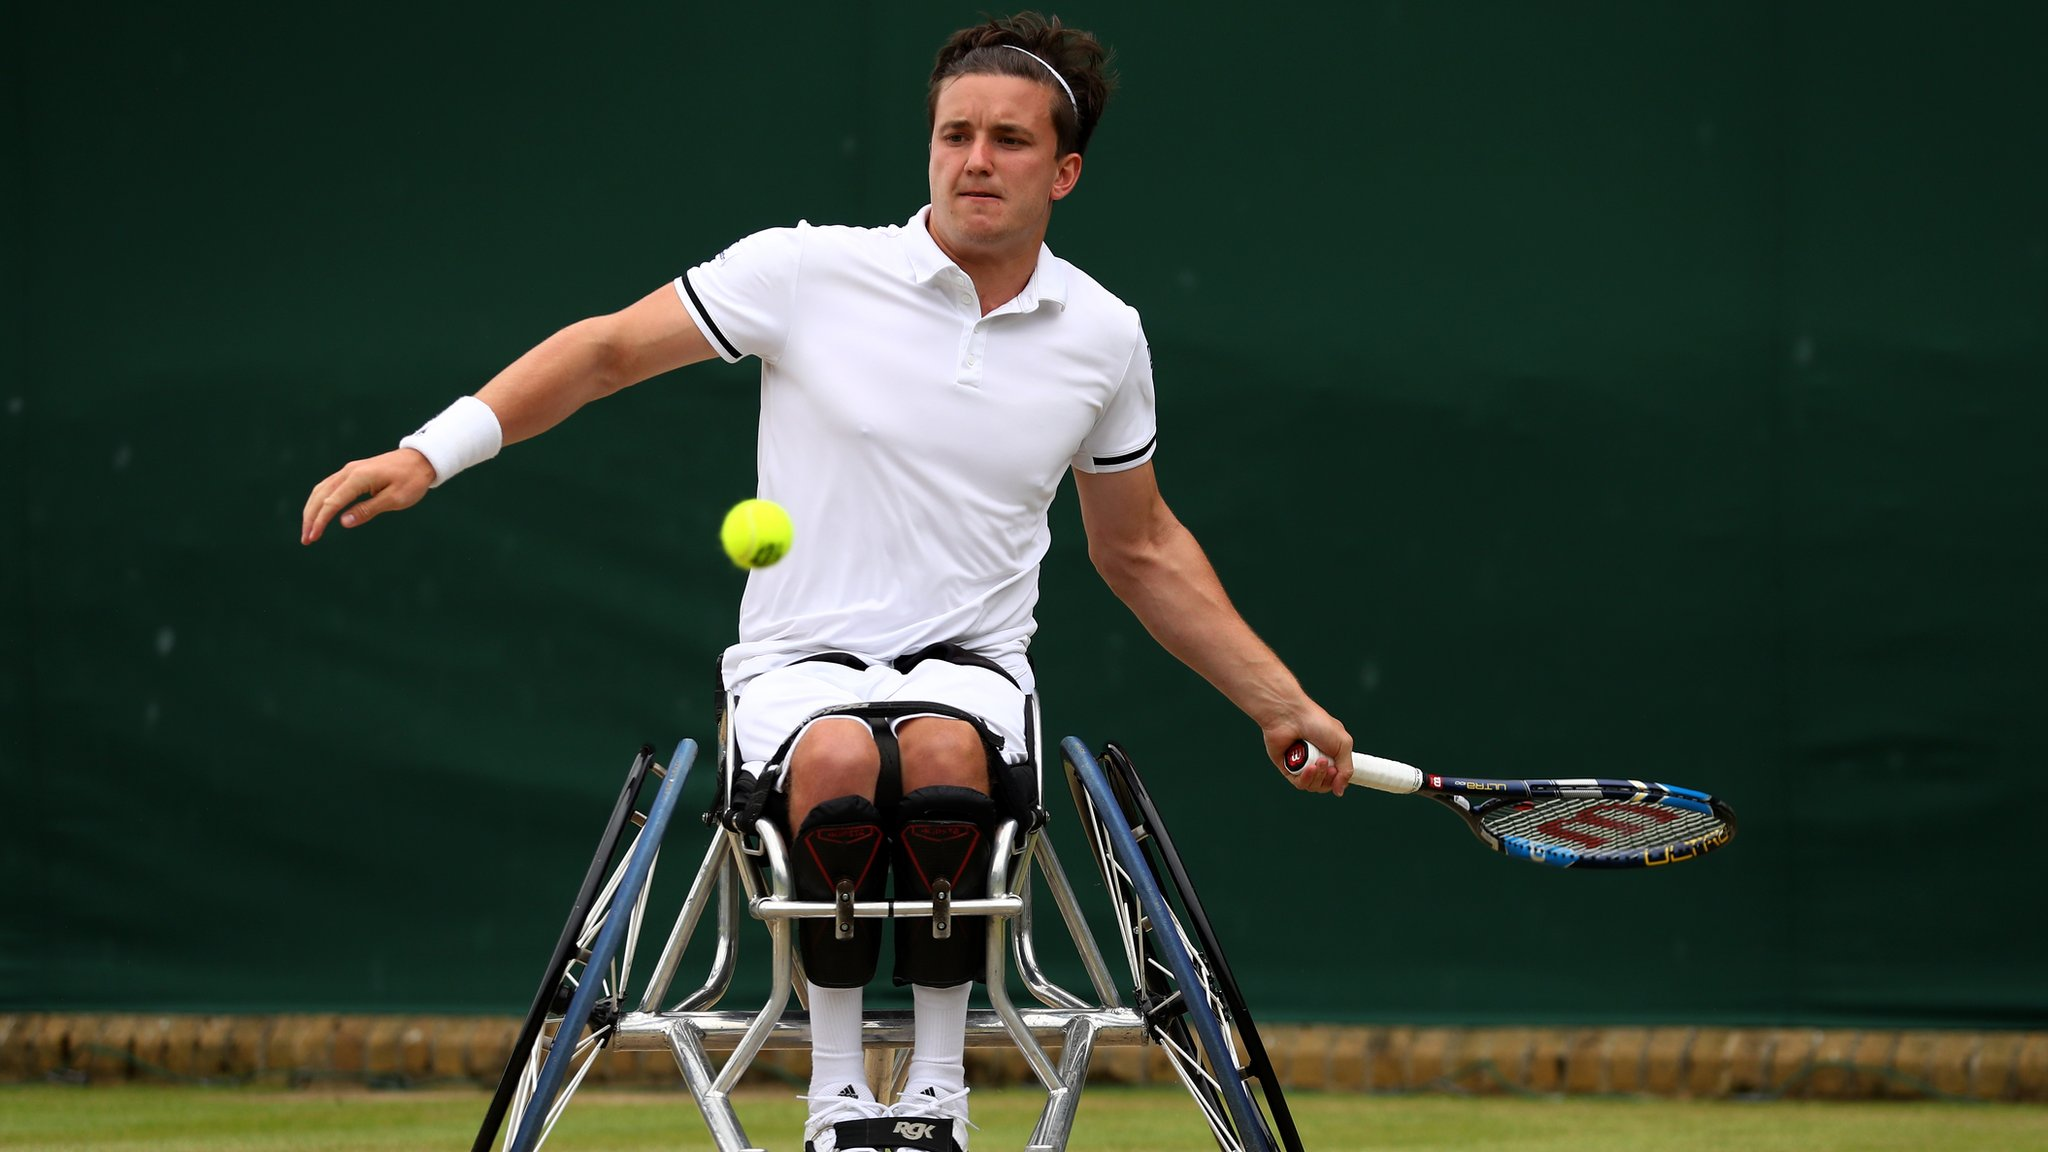 Rio 2016 Paralympics: A sport-by-sport guide